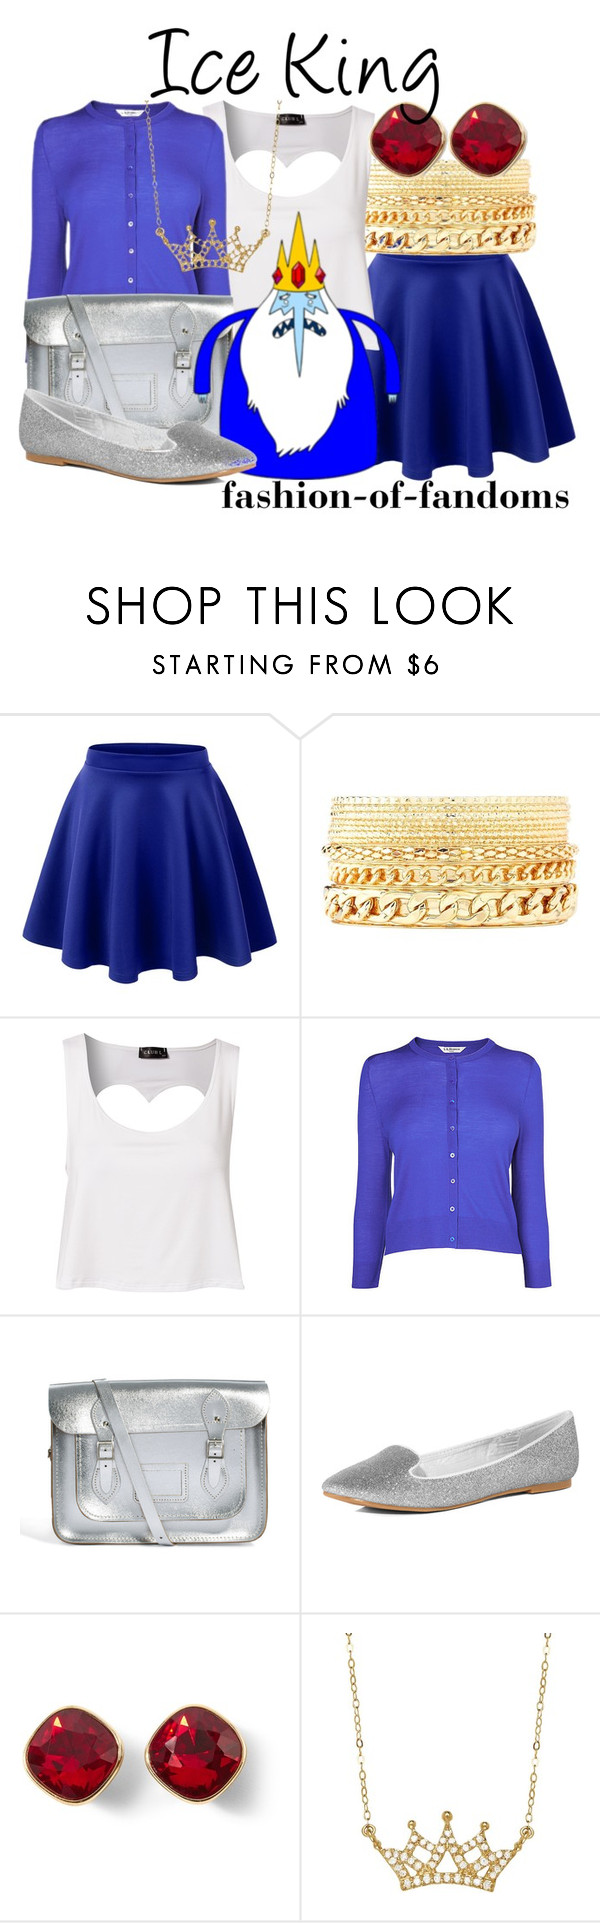 """""""Ice King"""" by fofandoms ❤ liked on Polyvore featuring LE3NO, Charlotte Russe, Club L, L.K.Bennett, The Cambridge Satchel Company, Dorothy Perkins and White House Black Market"""